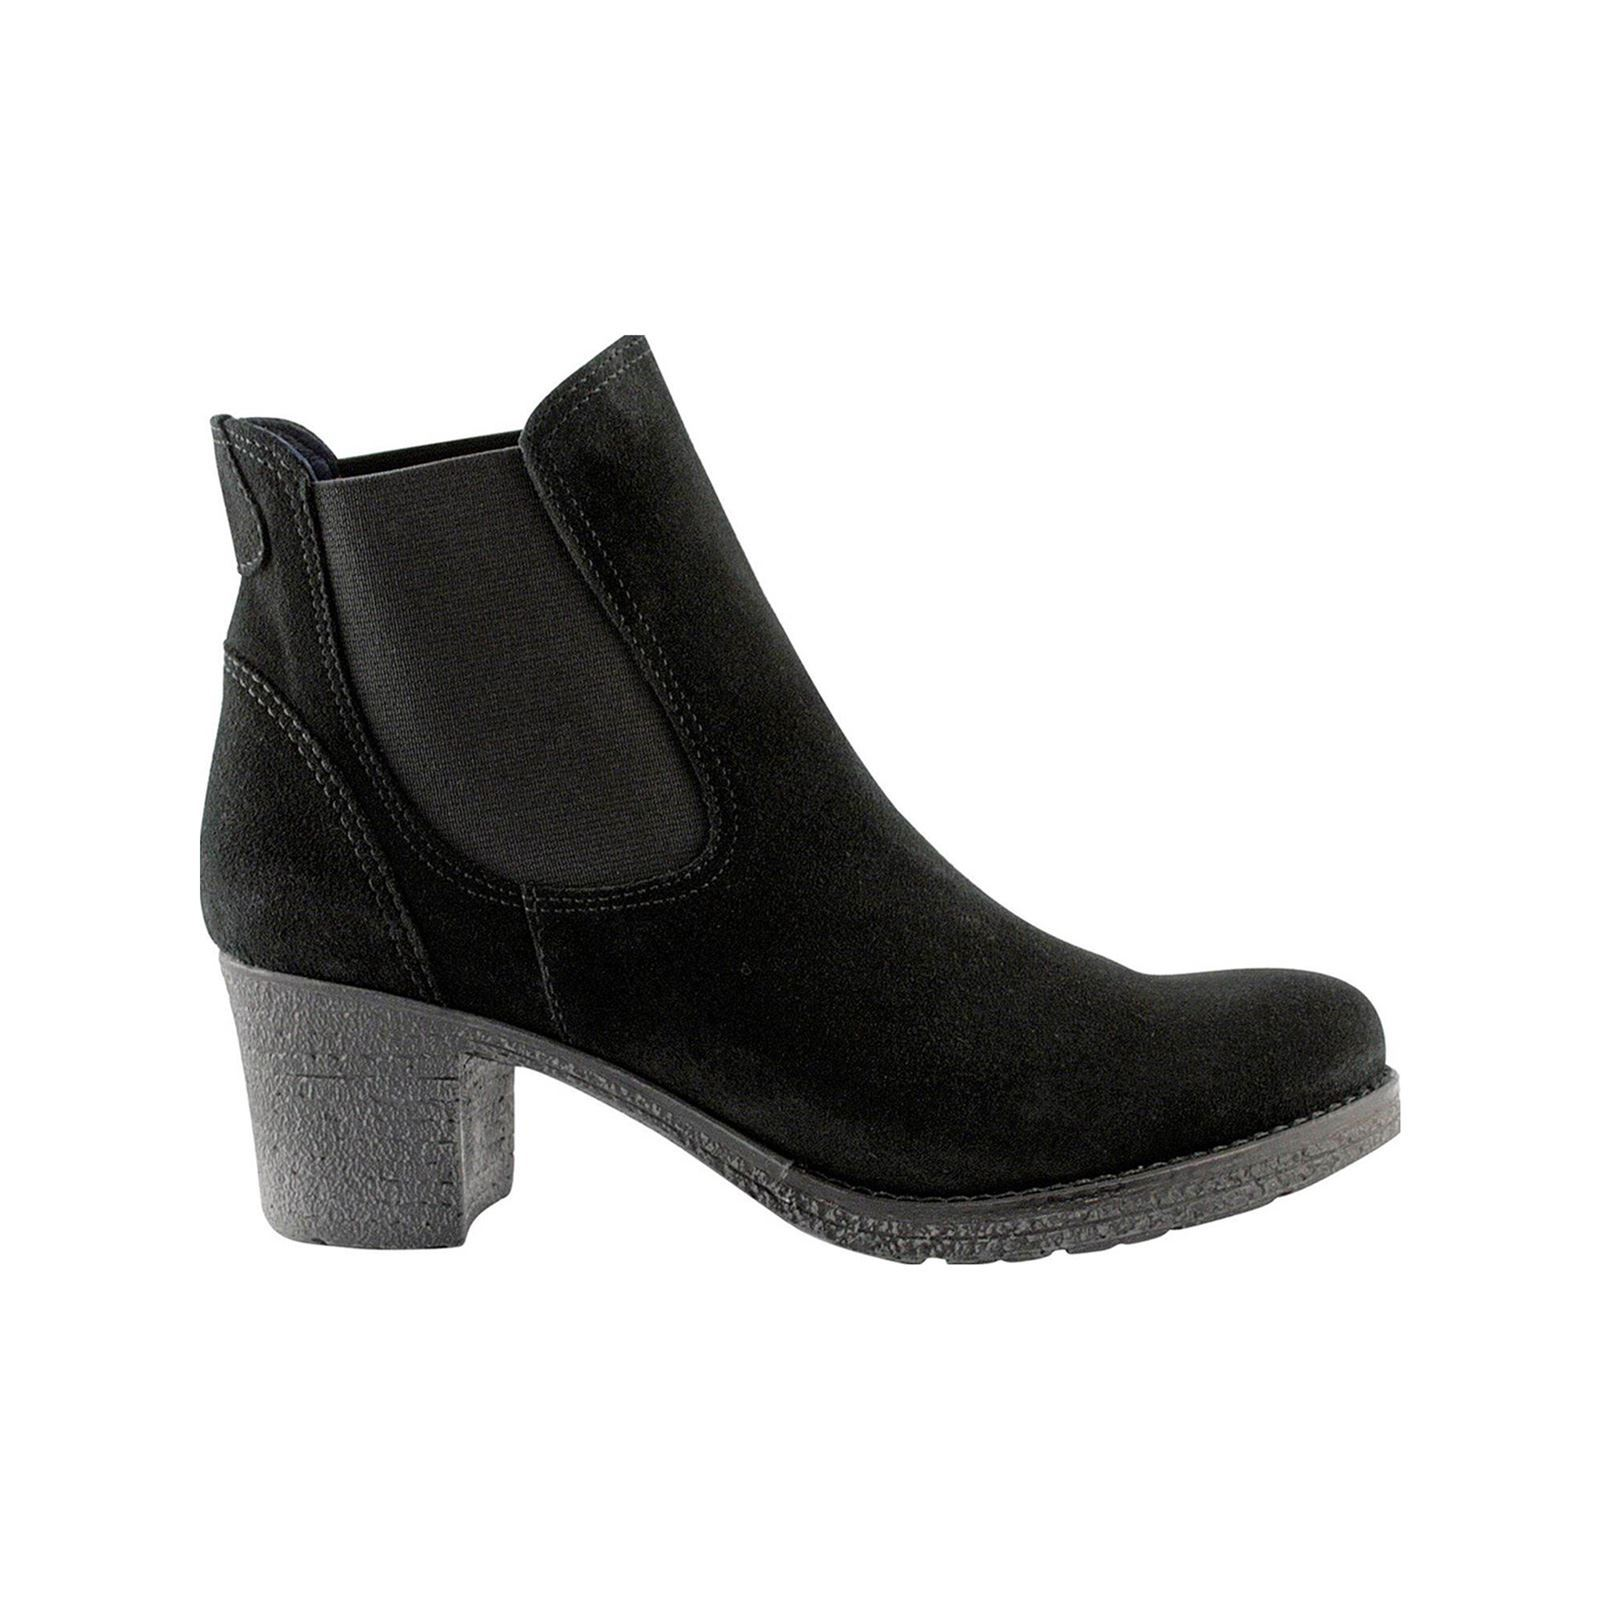 Exclusif Paris Edwige - Bottines en cuir - noir b0alH4h